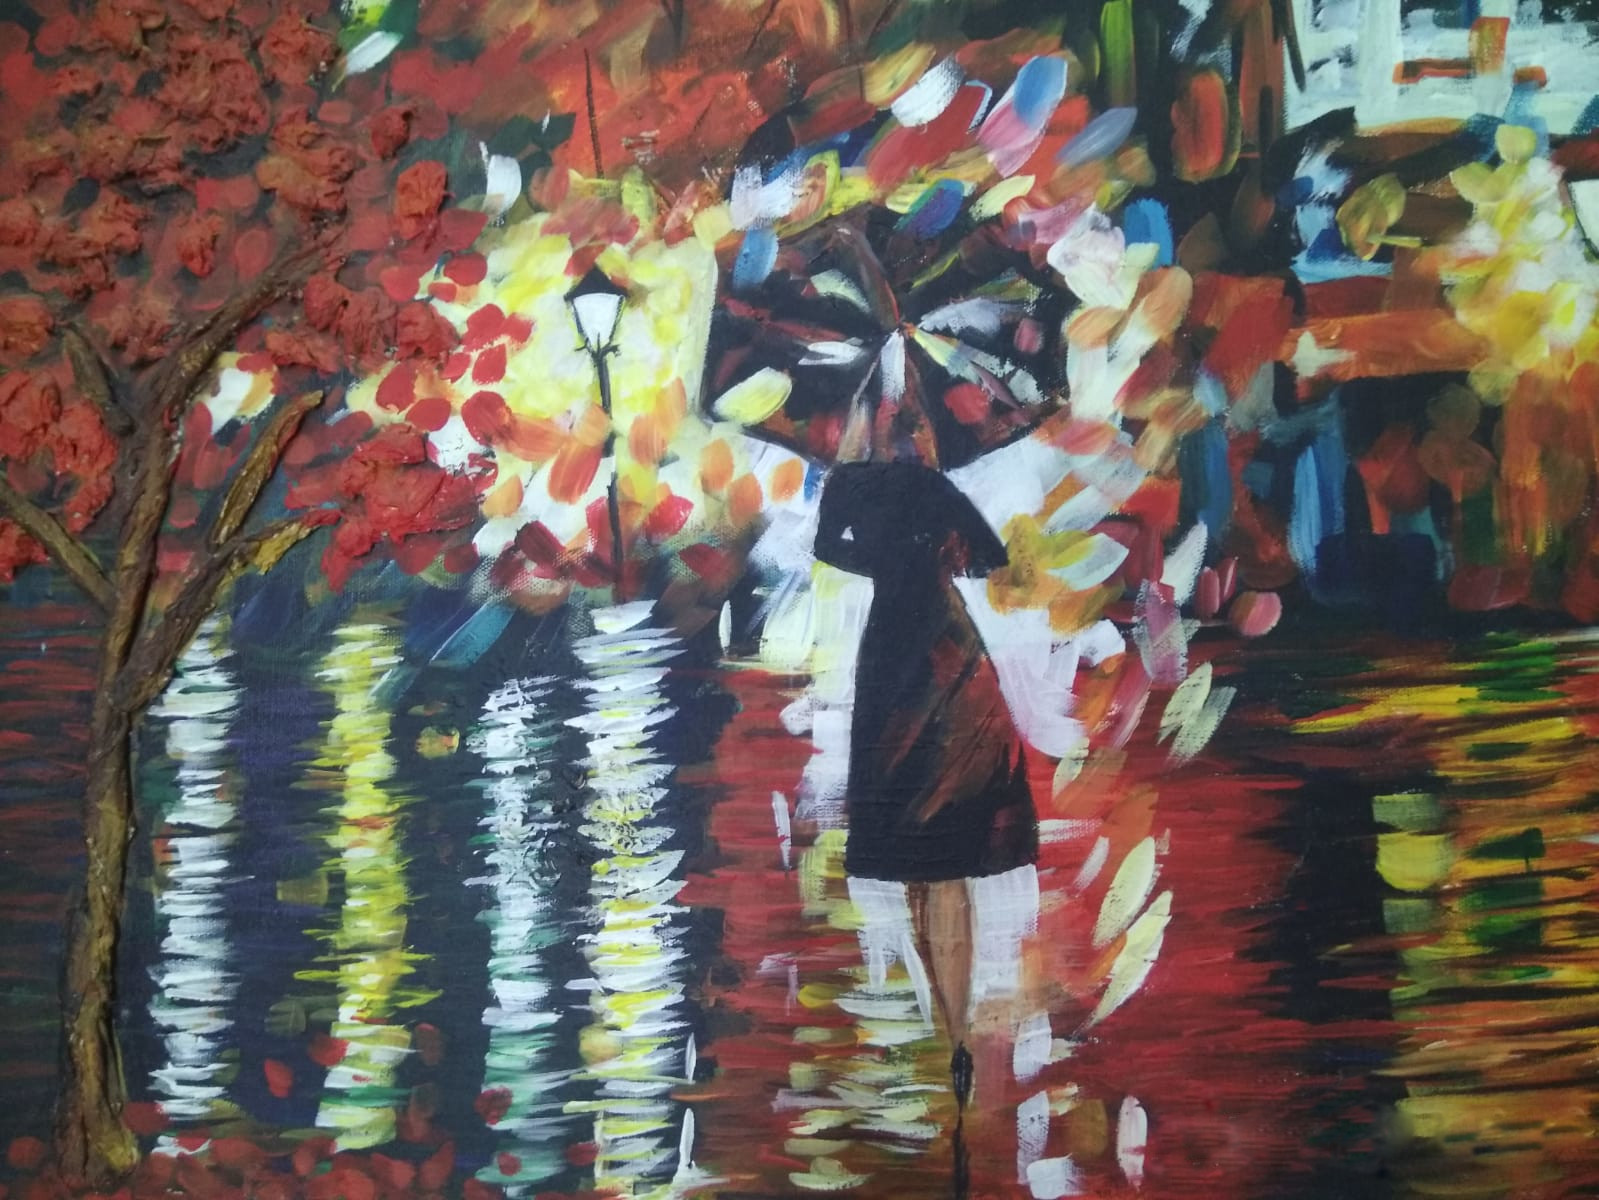 REMINISCENCE    Oil with paper mache on canvas. This piece is part a collection where it features the rear of various groups of people feeling joy in the midst of the dark and gloomy weather. A single lady suddenly recollects her not so lonely past as she walks by.